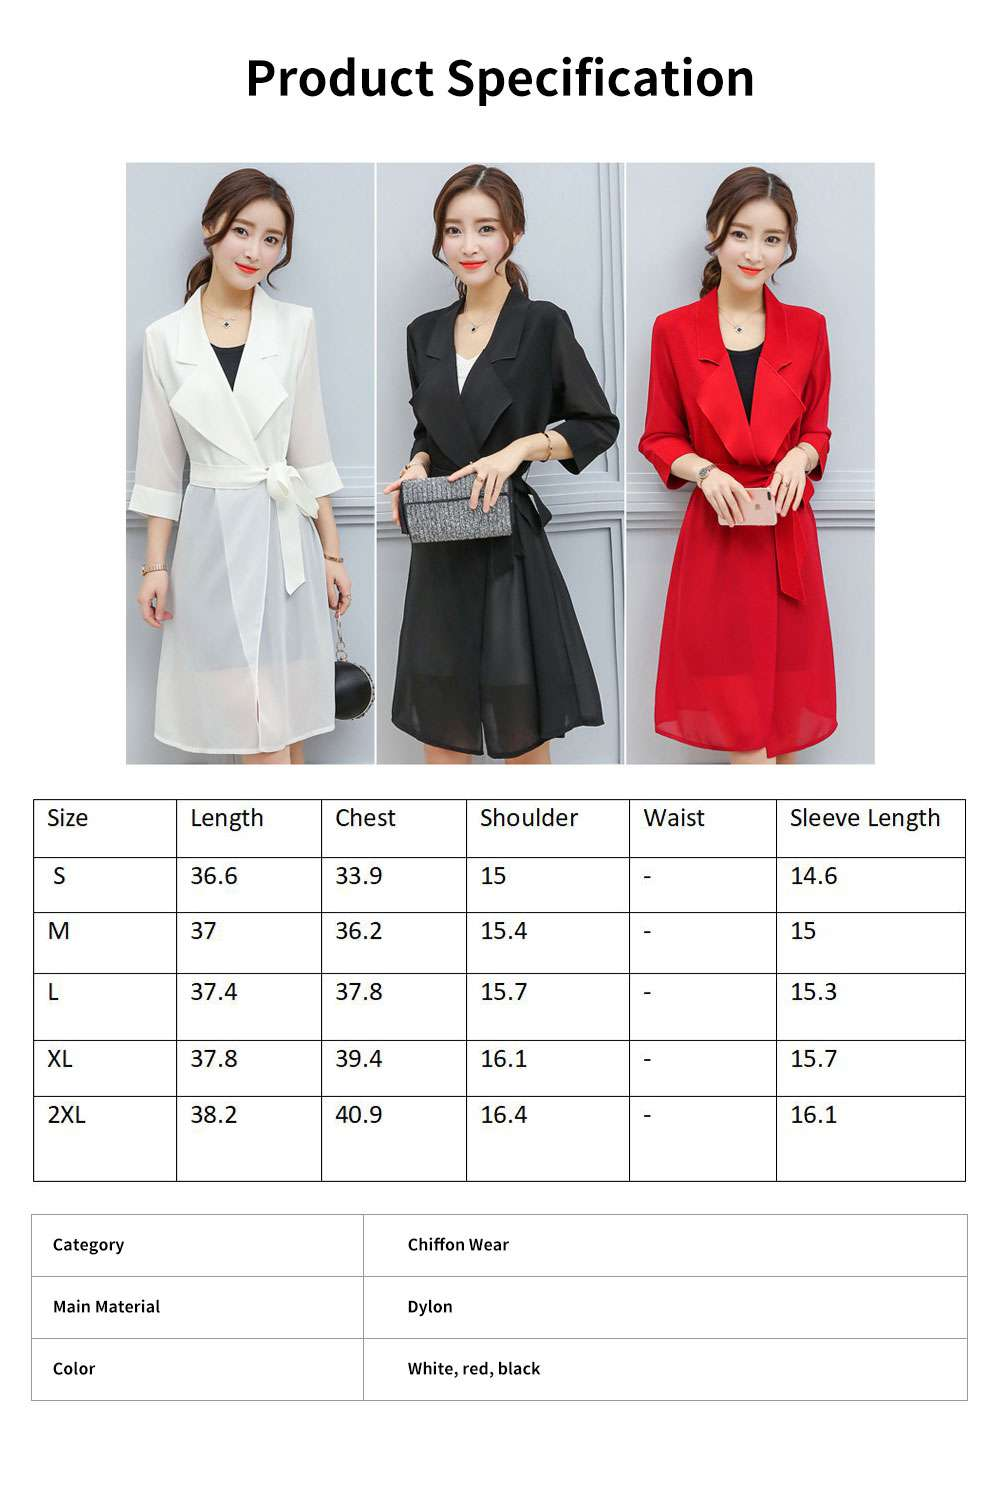 Lady Chiffon Wind Coat Mid-long Sun-proof Wind-proof Coat Sun Coat Thin Outwear with Waistband for Women 6